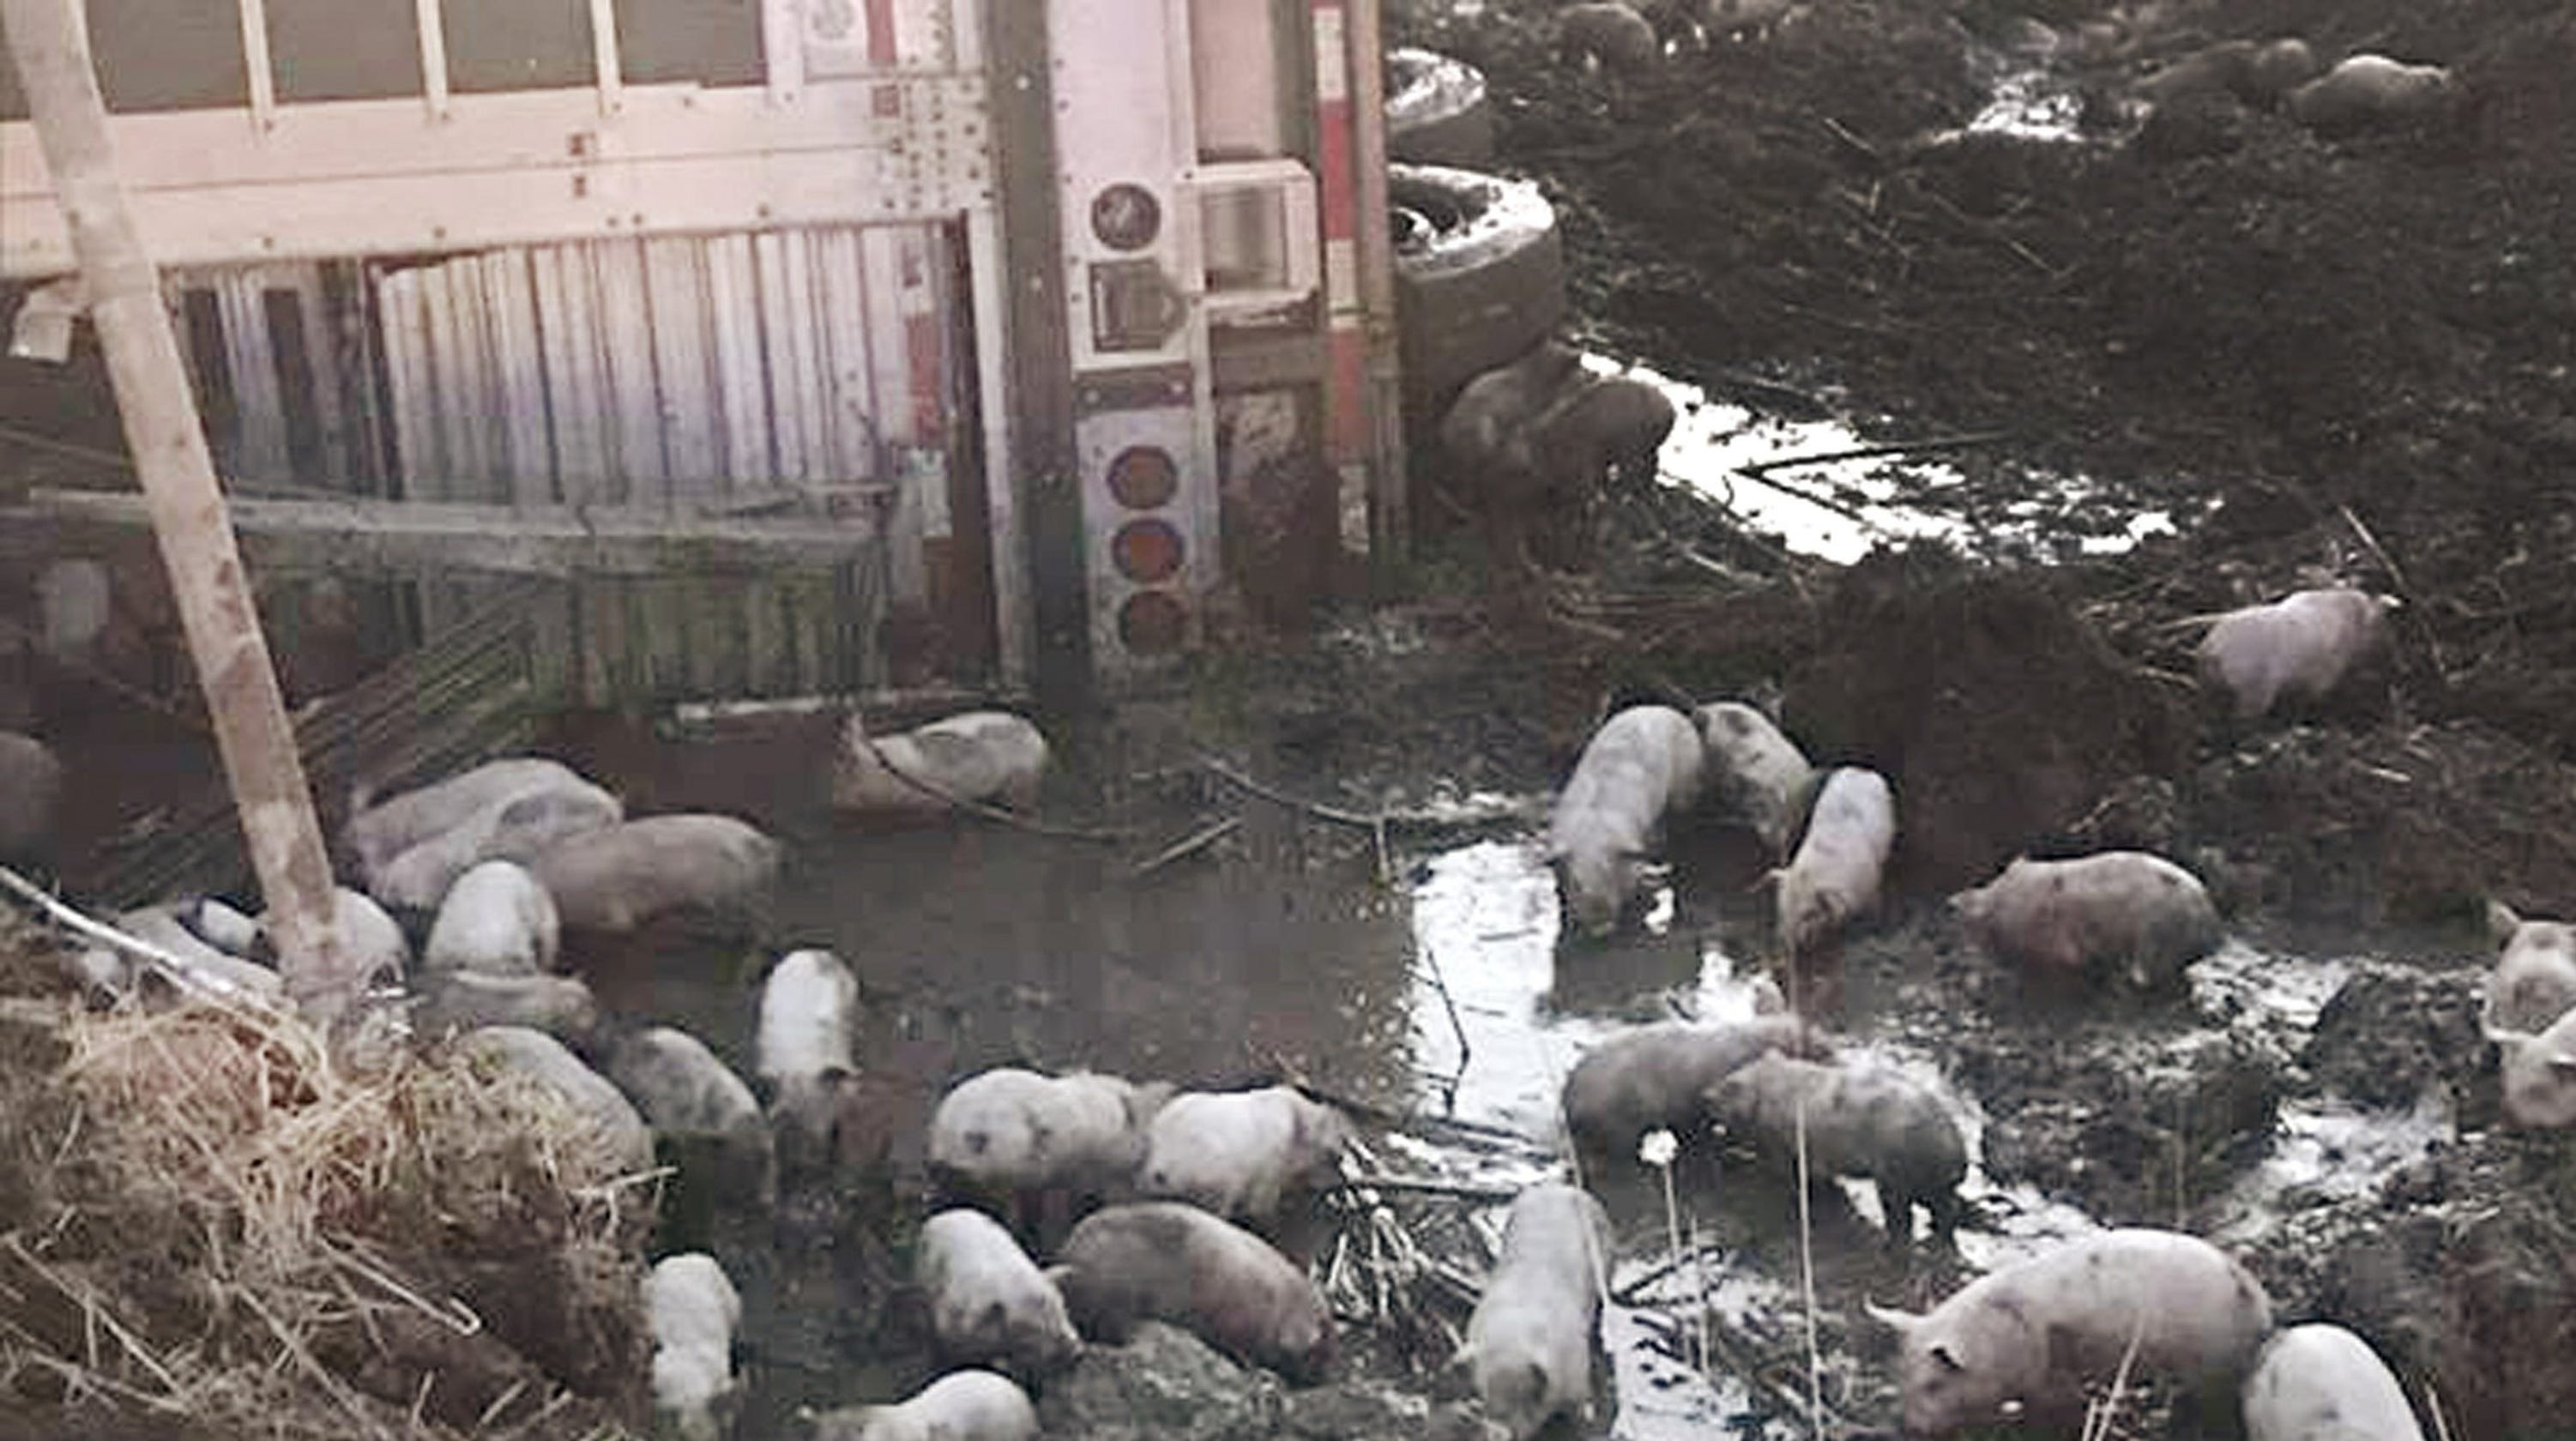 Truck crash sets 3,000 piglets loose on Illinois highway, killing about 100 of them